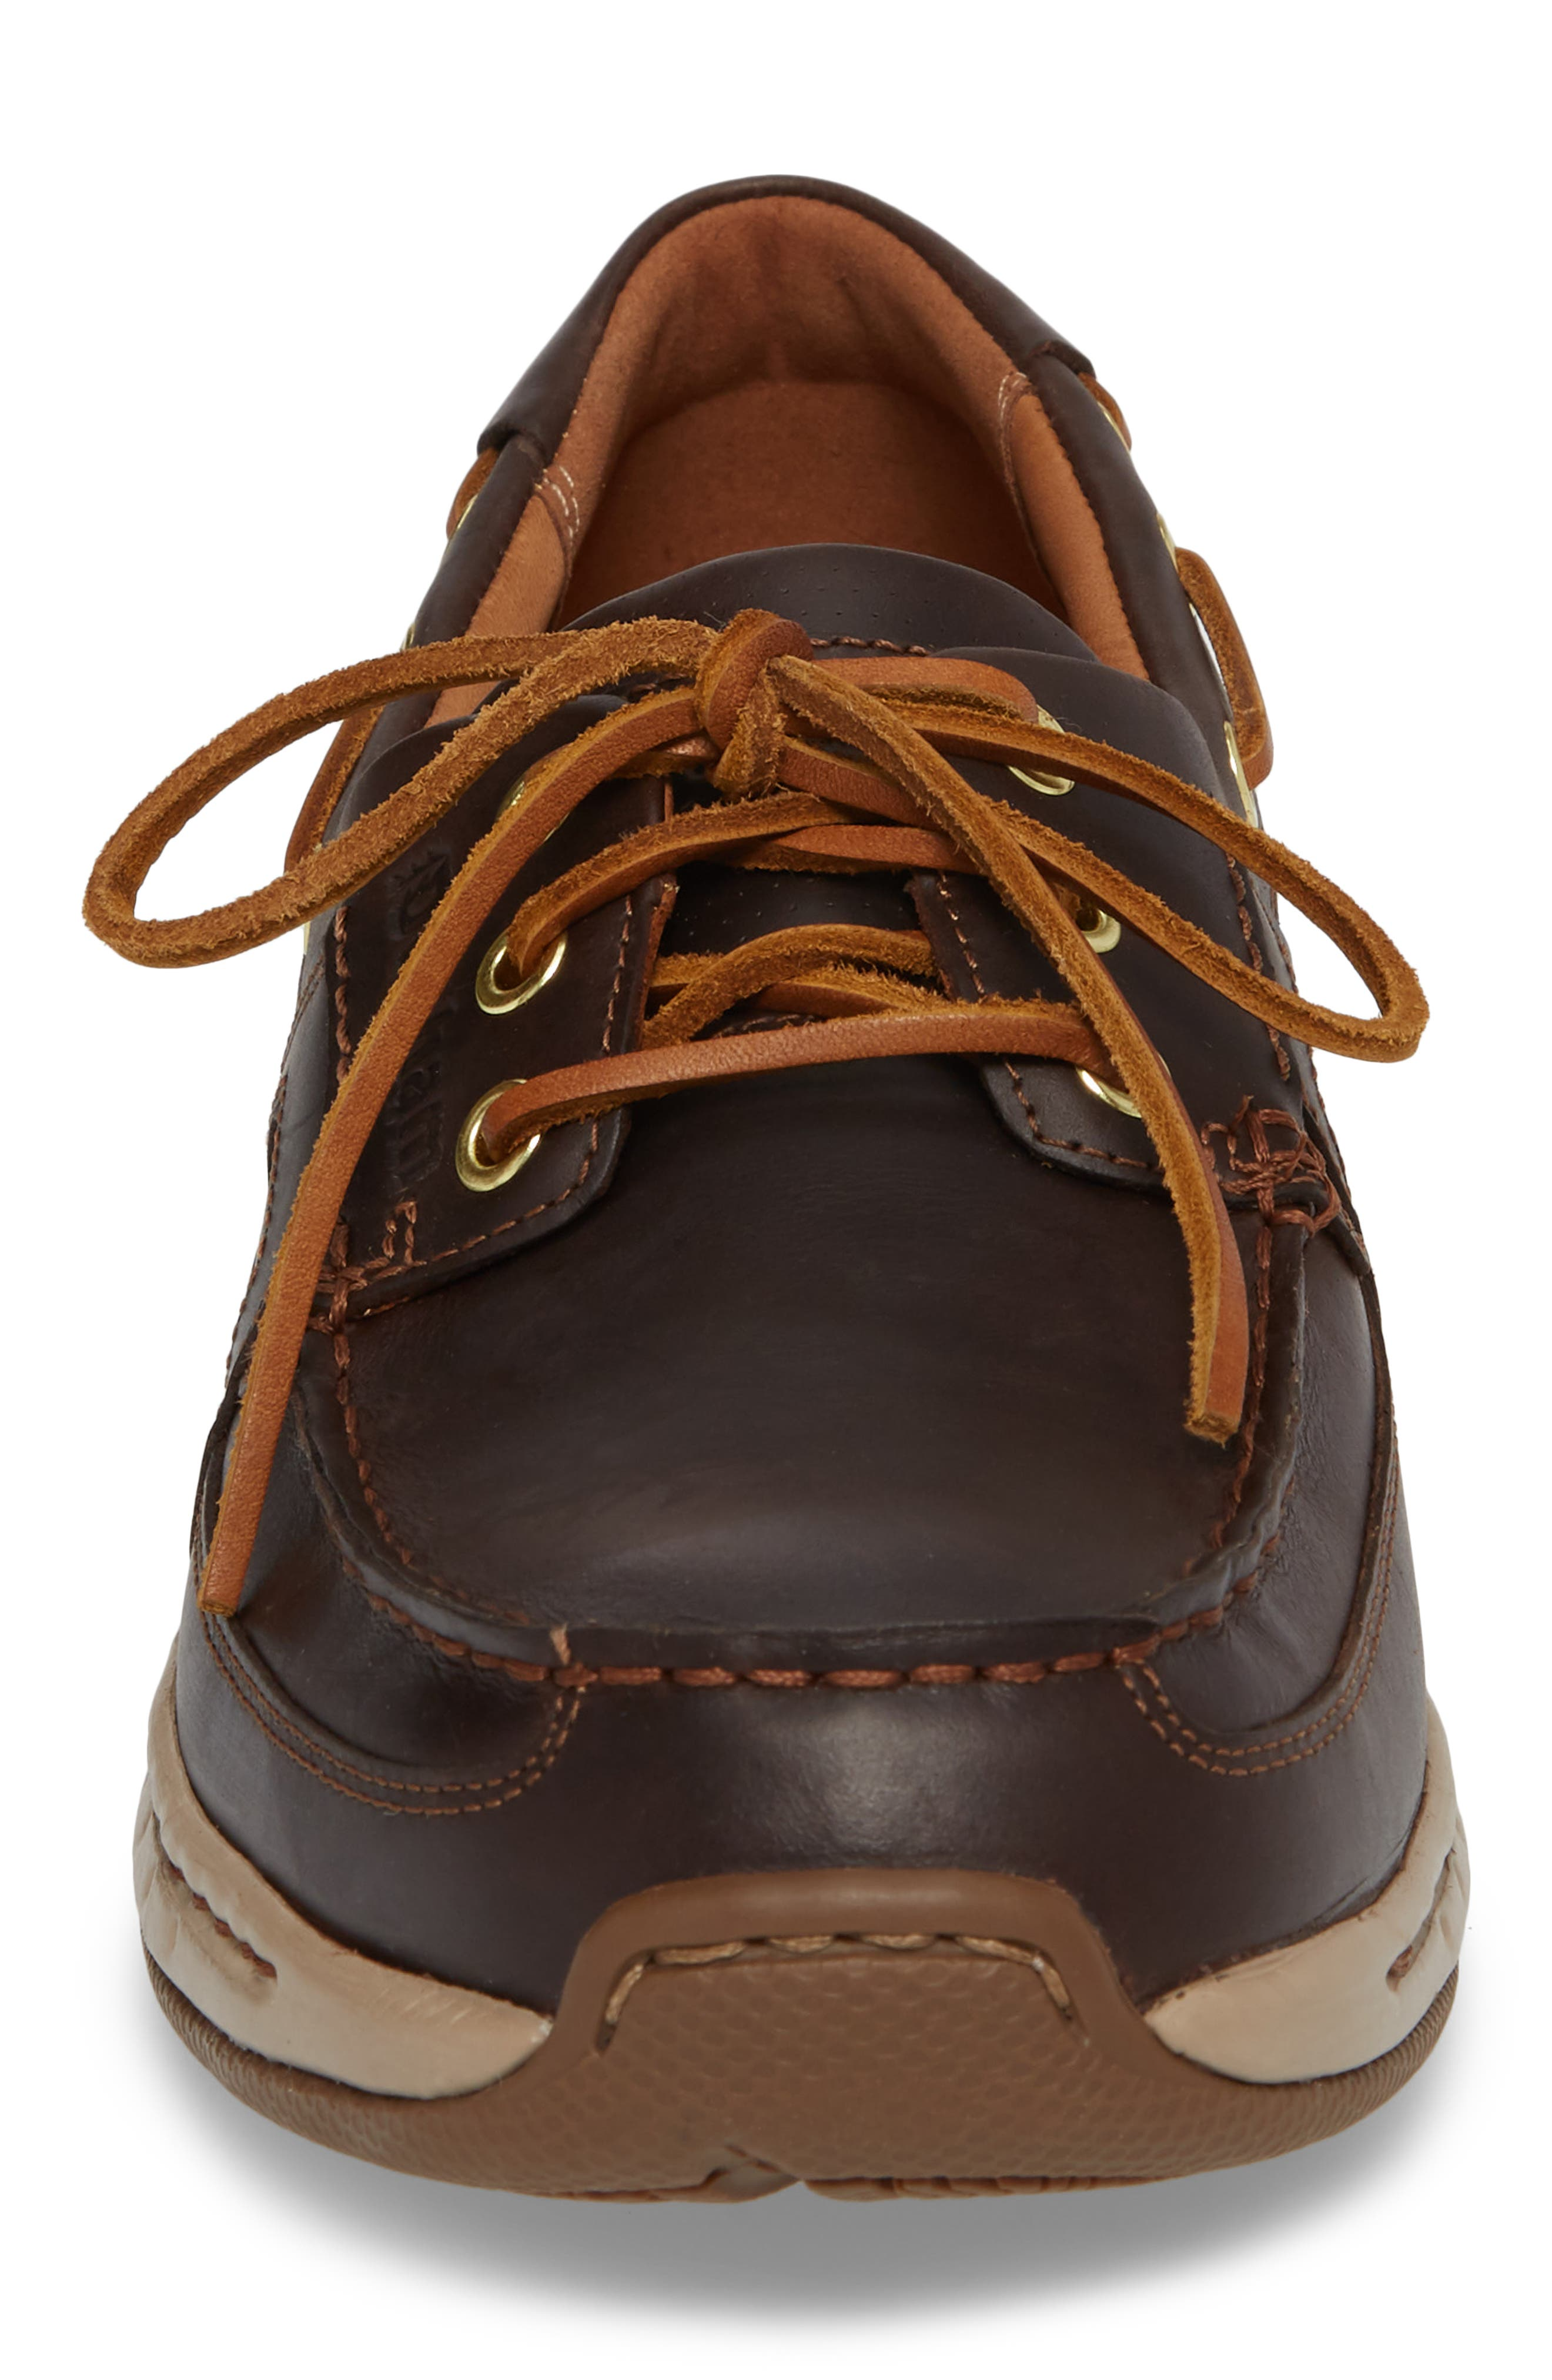 LTD Water Resistant Boat Shoe,                             Alternate thumbnail 4, color,                             TAN LEATHER